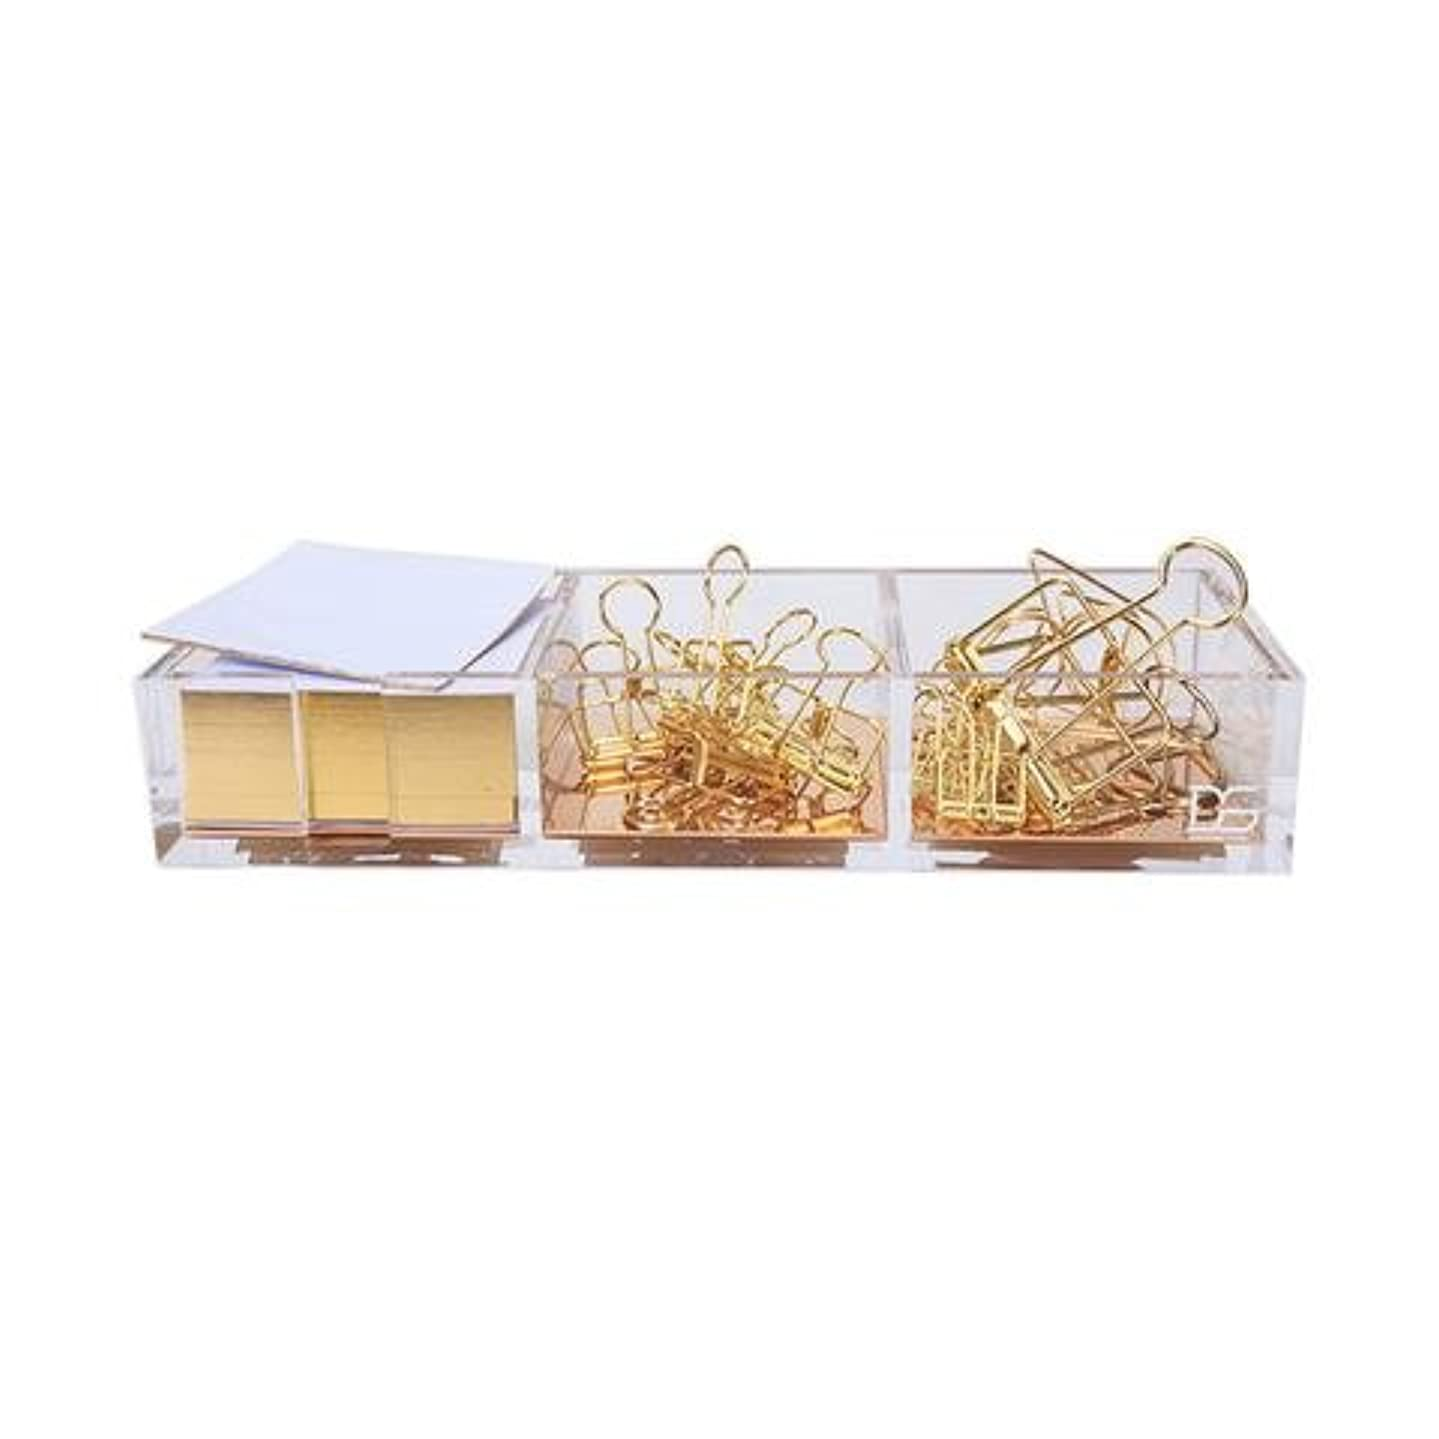 Clarity Gold Notes Holder with Cube Memo Pad 320 Sheets, Acrylic 3 in 1 Drawer Organizer by Draymond Story (Clips Sold Separately) - Gift Ideas for Women